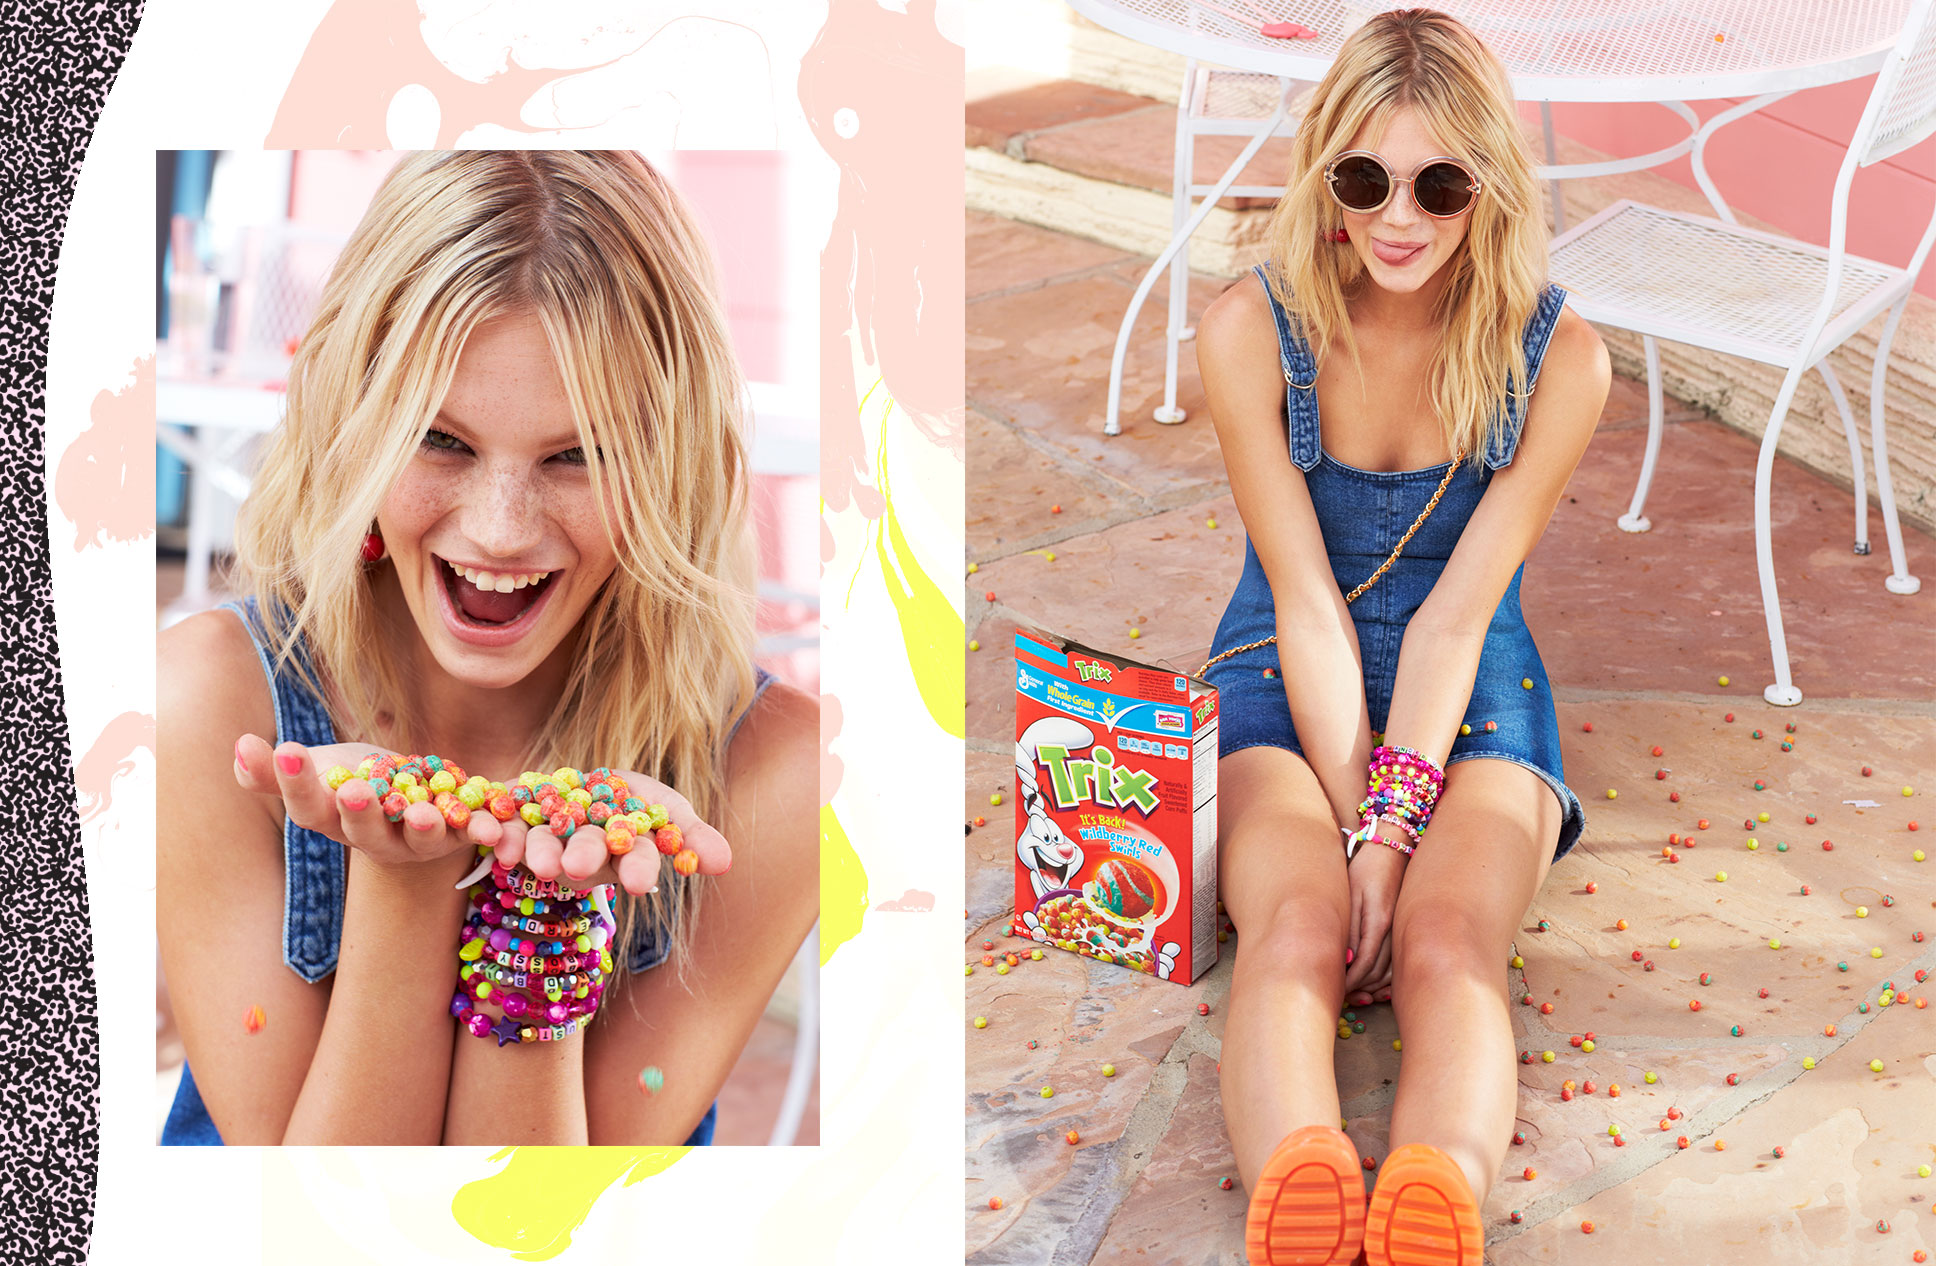 Discussion on this topic: Nasty Gal Coachella 2013 Valley Girl Lookbook, nasty-gal-coachella-2013-valley-girl-lookbook/